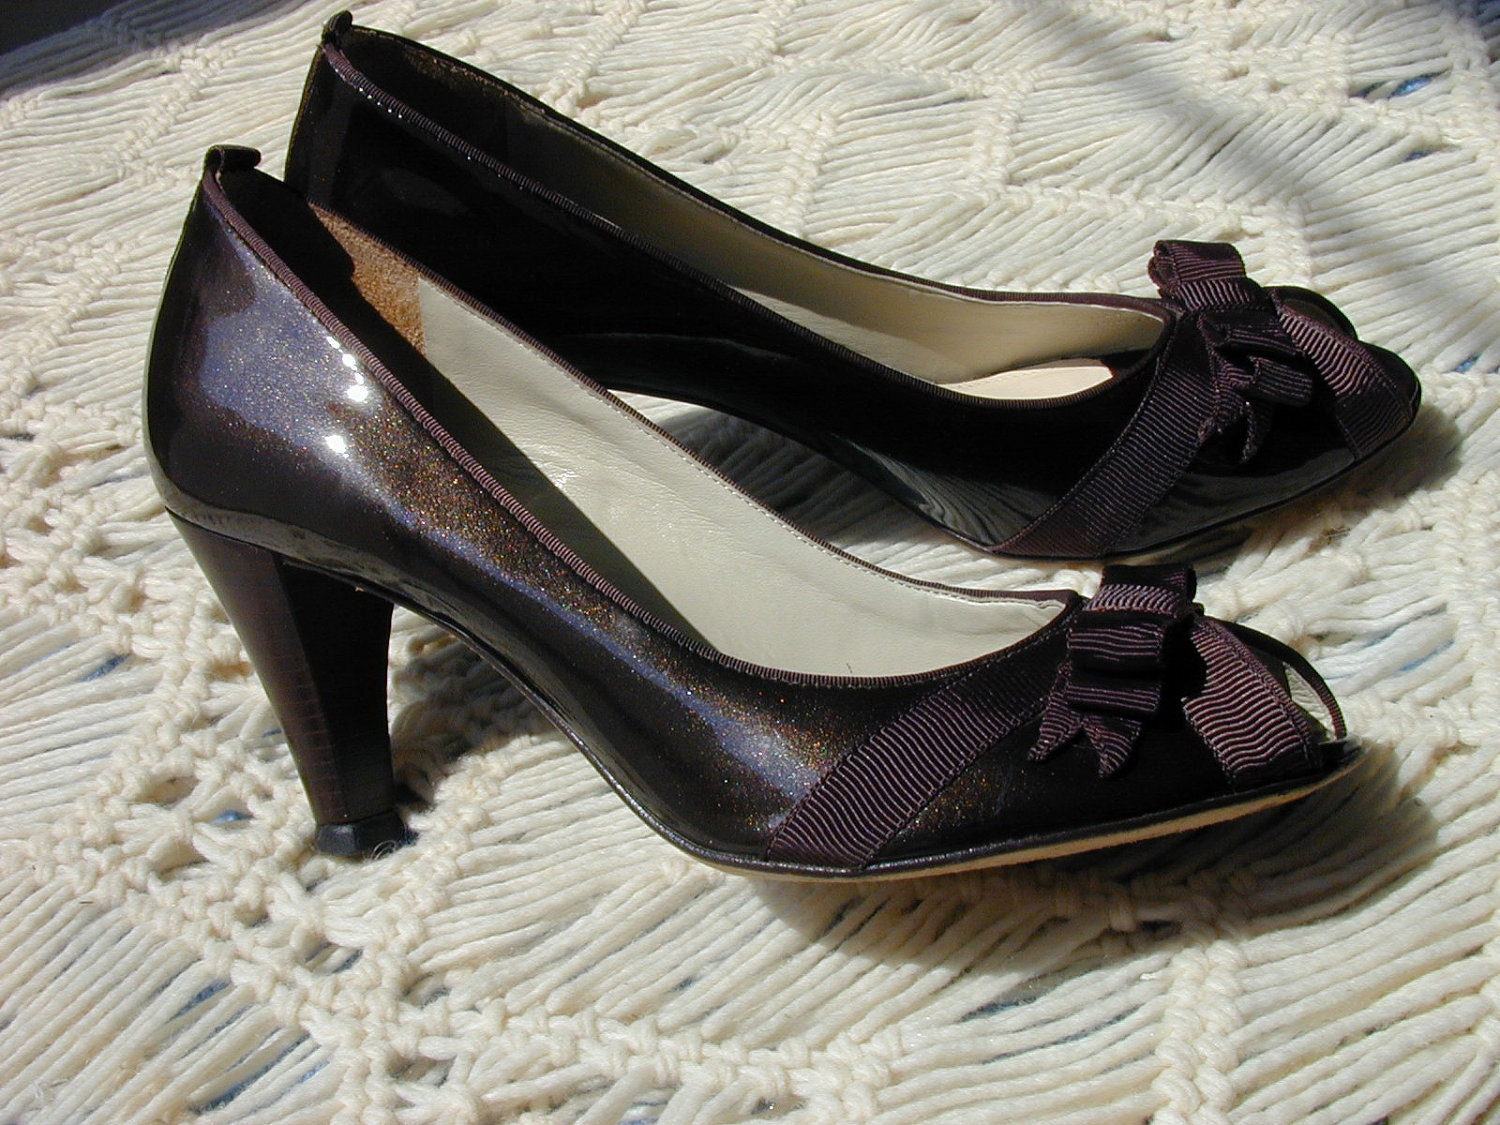 SALE VTG Chocolate Sparkle Peep Toe Pumps by Antonio Melani 8 1/2